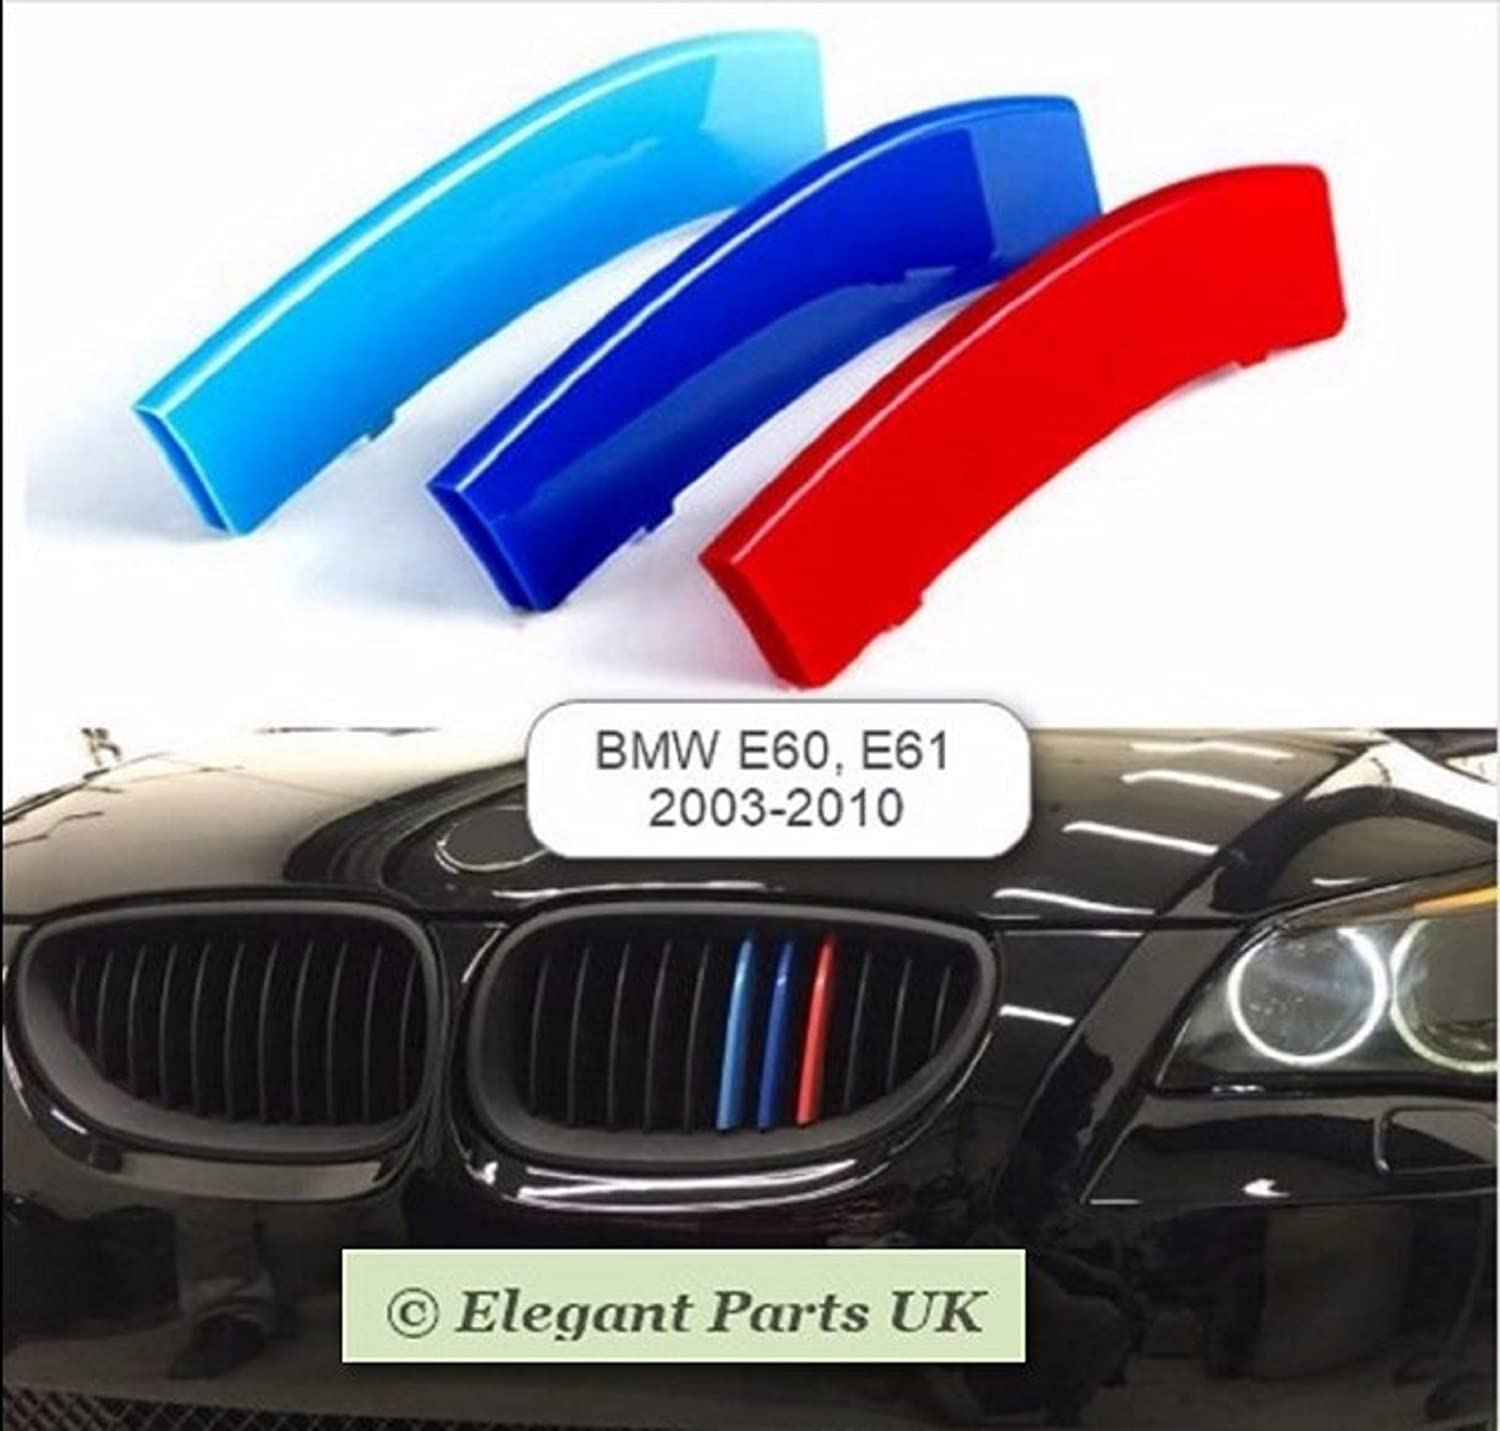 3D 3 Colours Kidney Grille ABS Covers for //////M Sport 5 Series E61 2003-2010